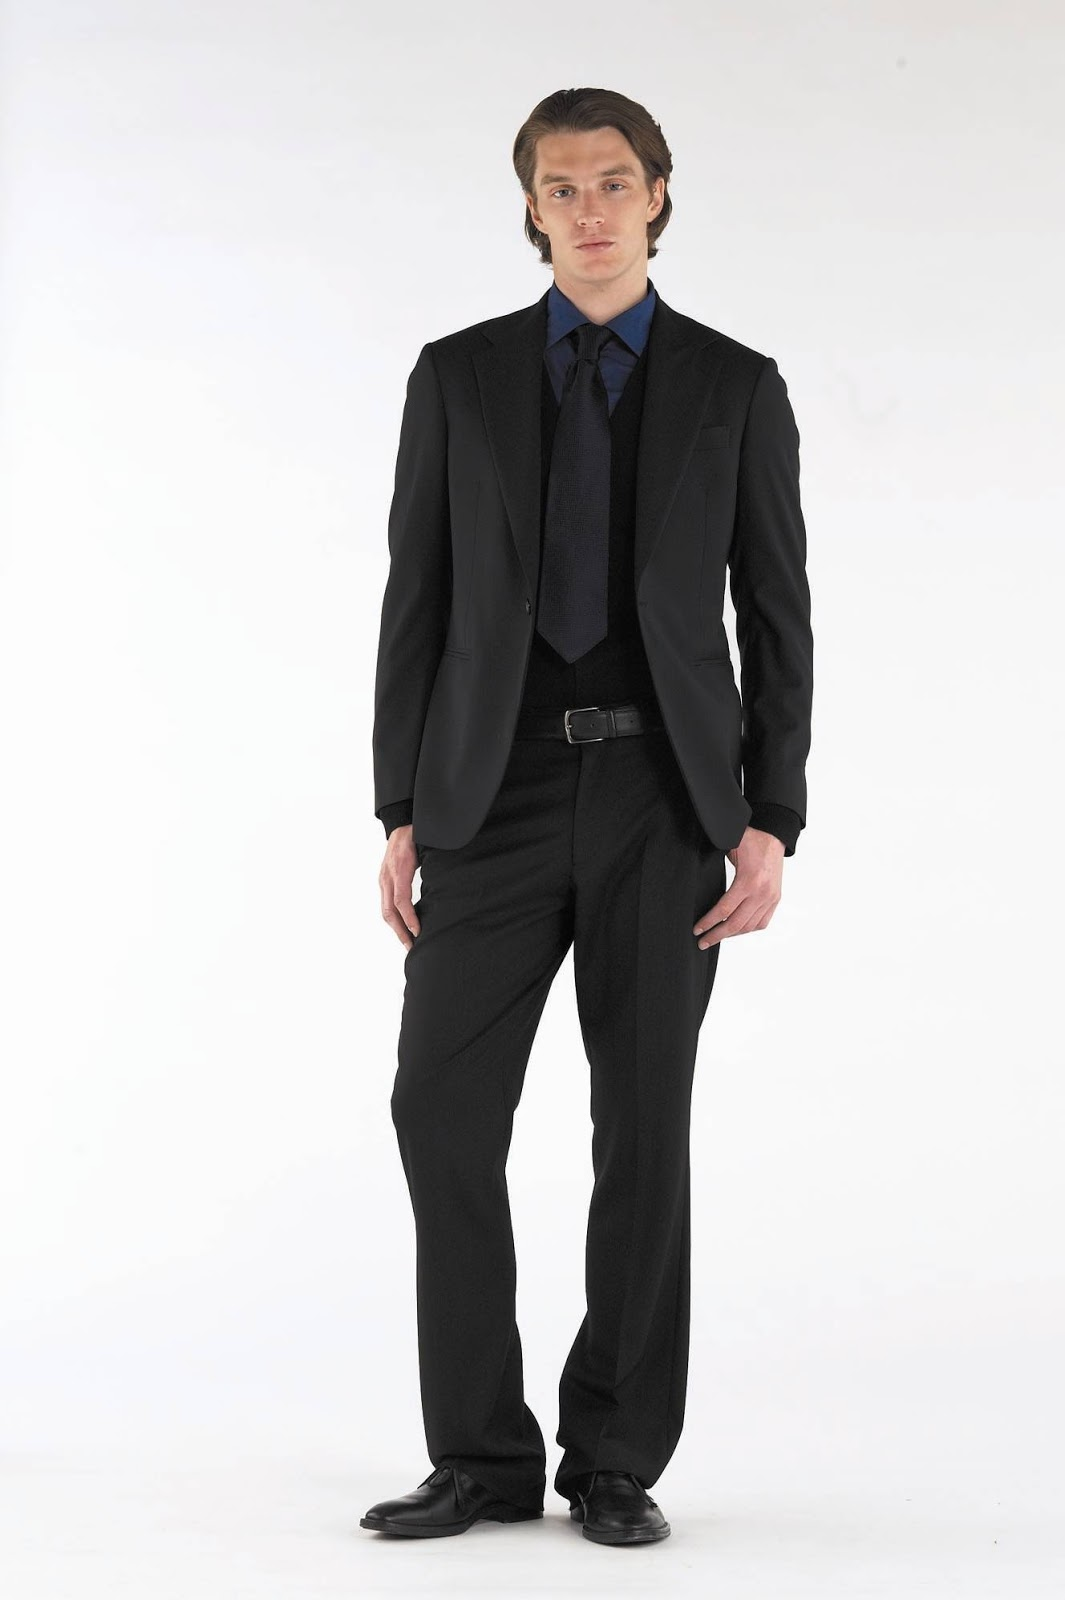 Matthewaperry Suits Blog: The Prom Dress Fashion Trends in ... New Style Dresses For Man 2013